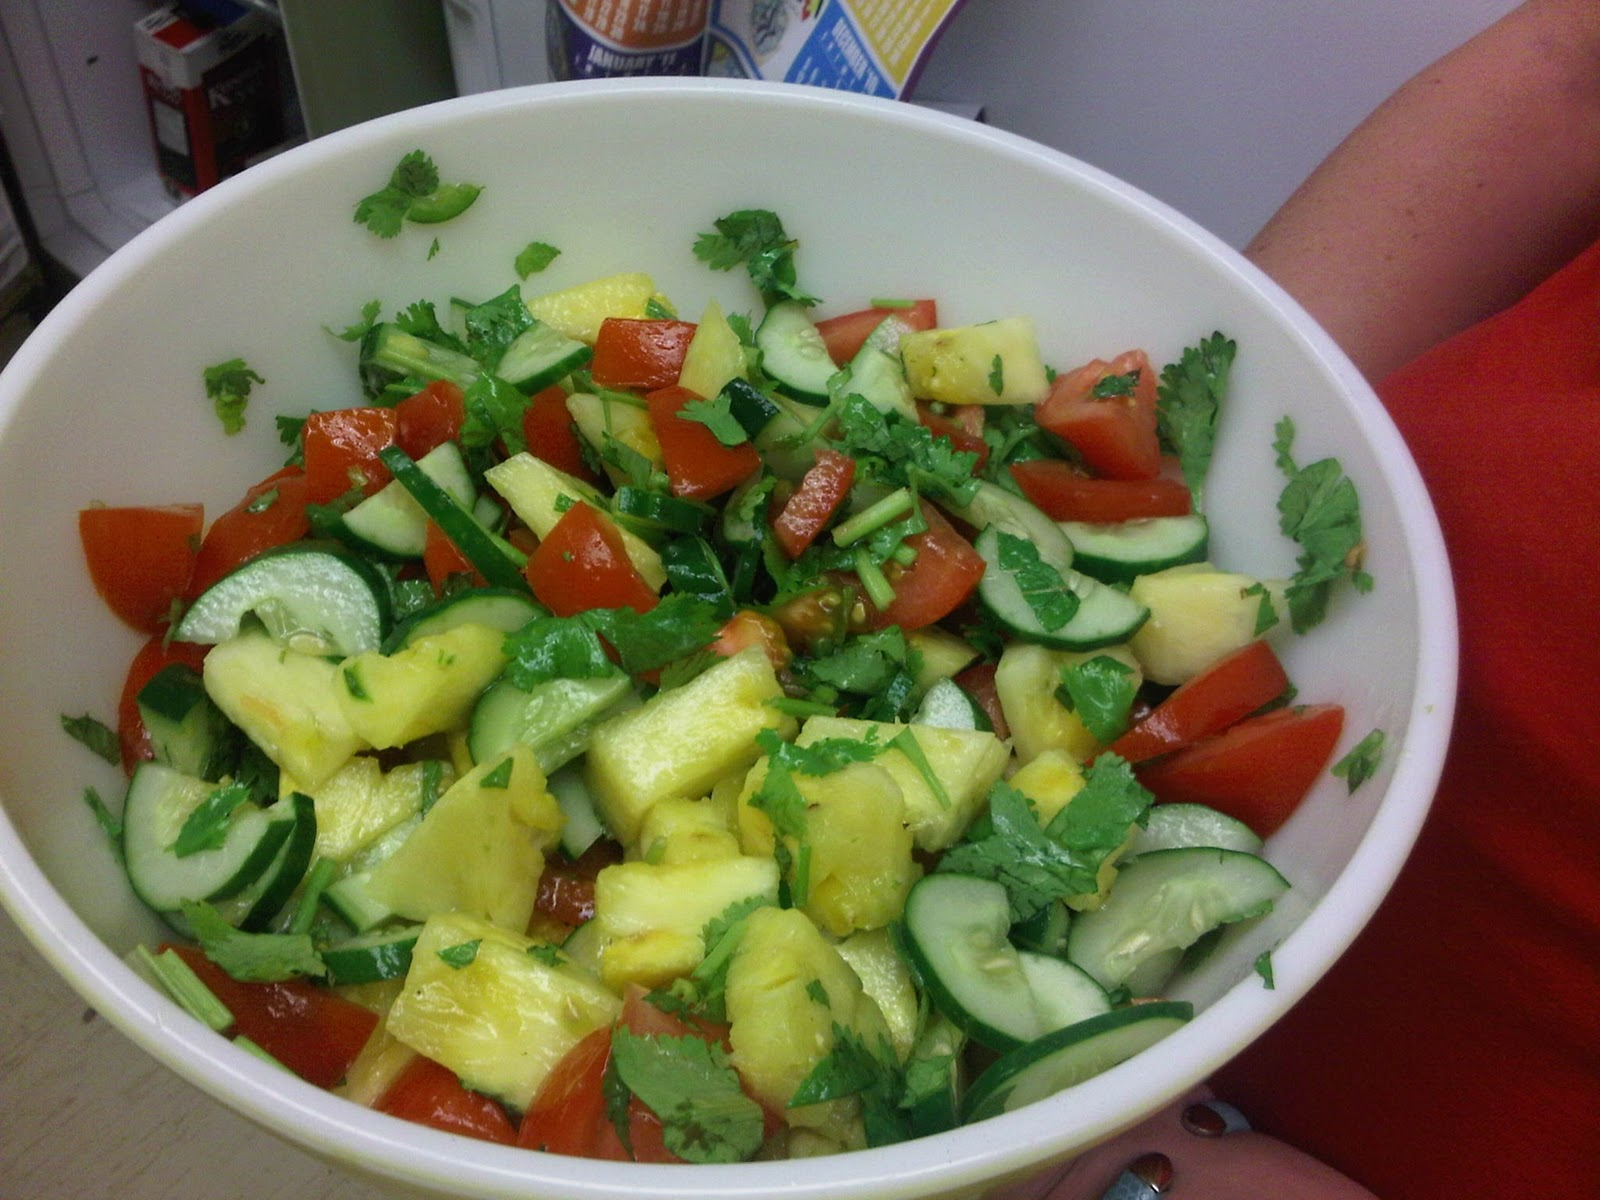 vietnamese pineapple cucumber and tomato salad dressing 1 clove garlic